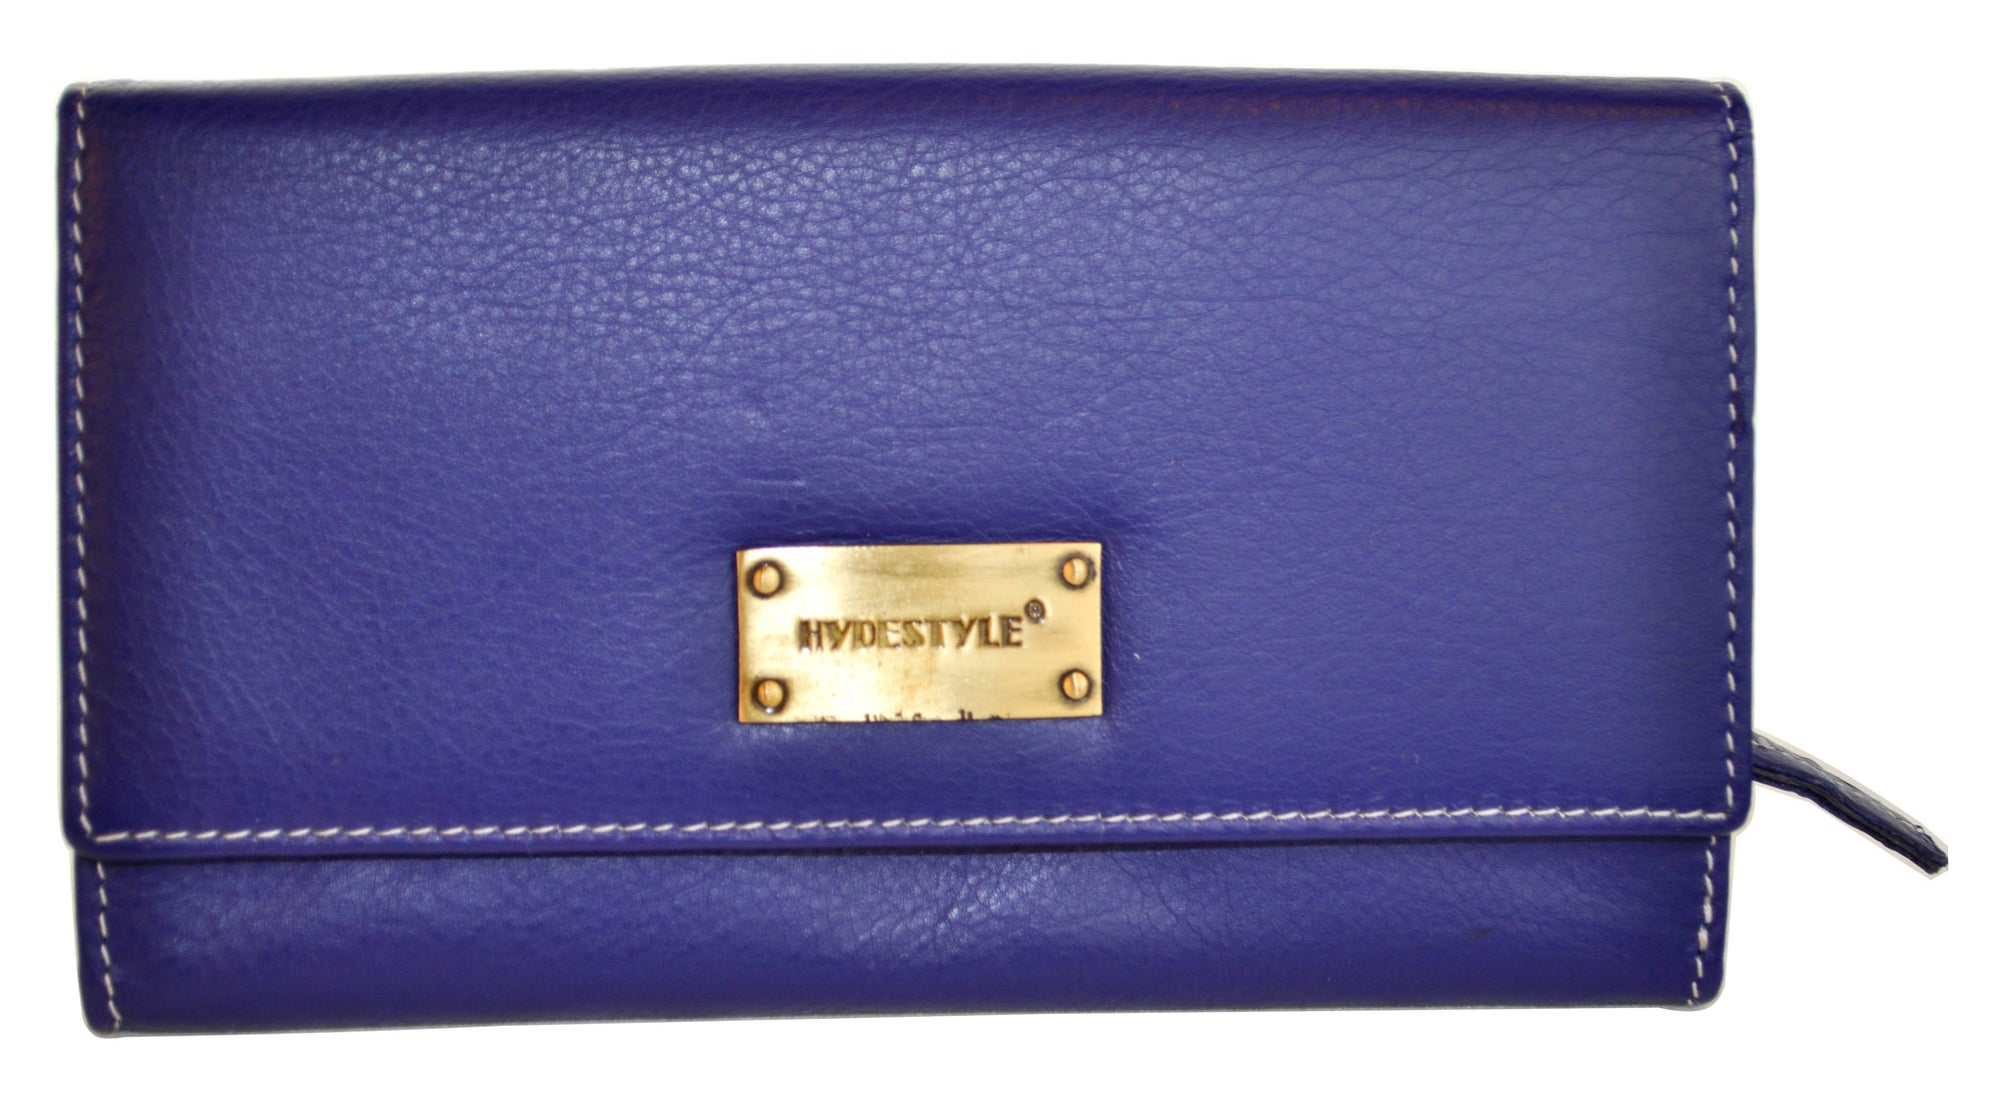 Pratico - women full Flap Leather Wallet #LW07 Blue